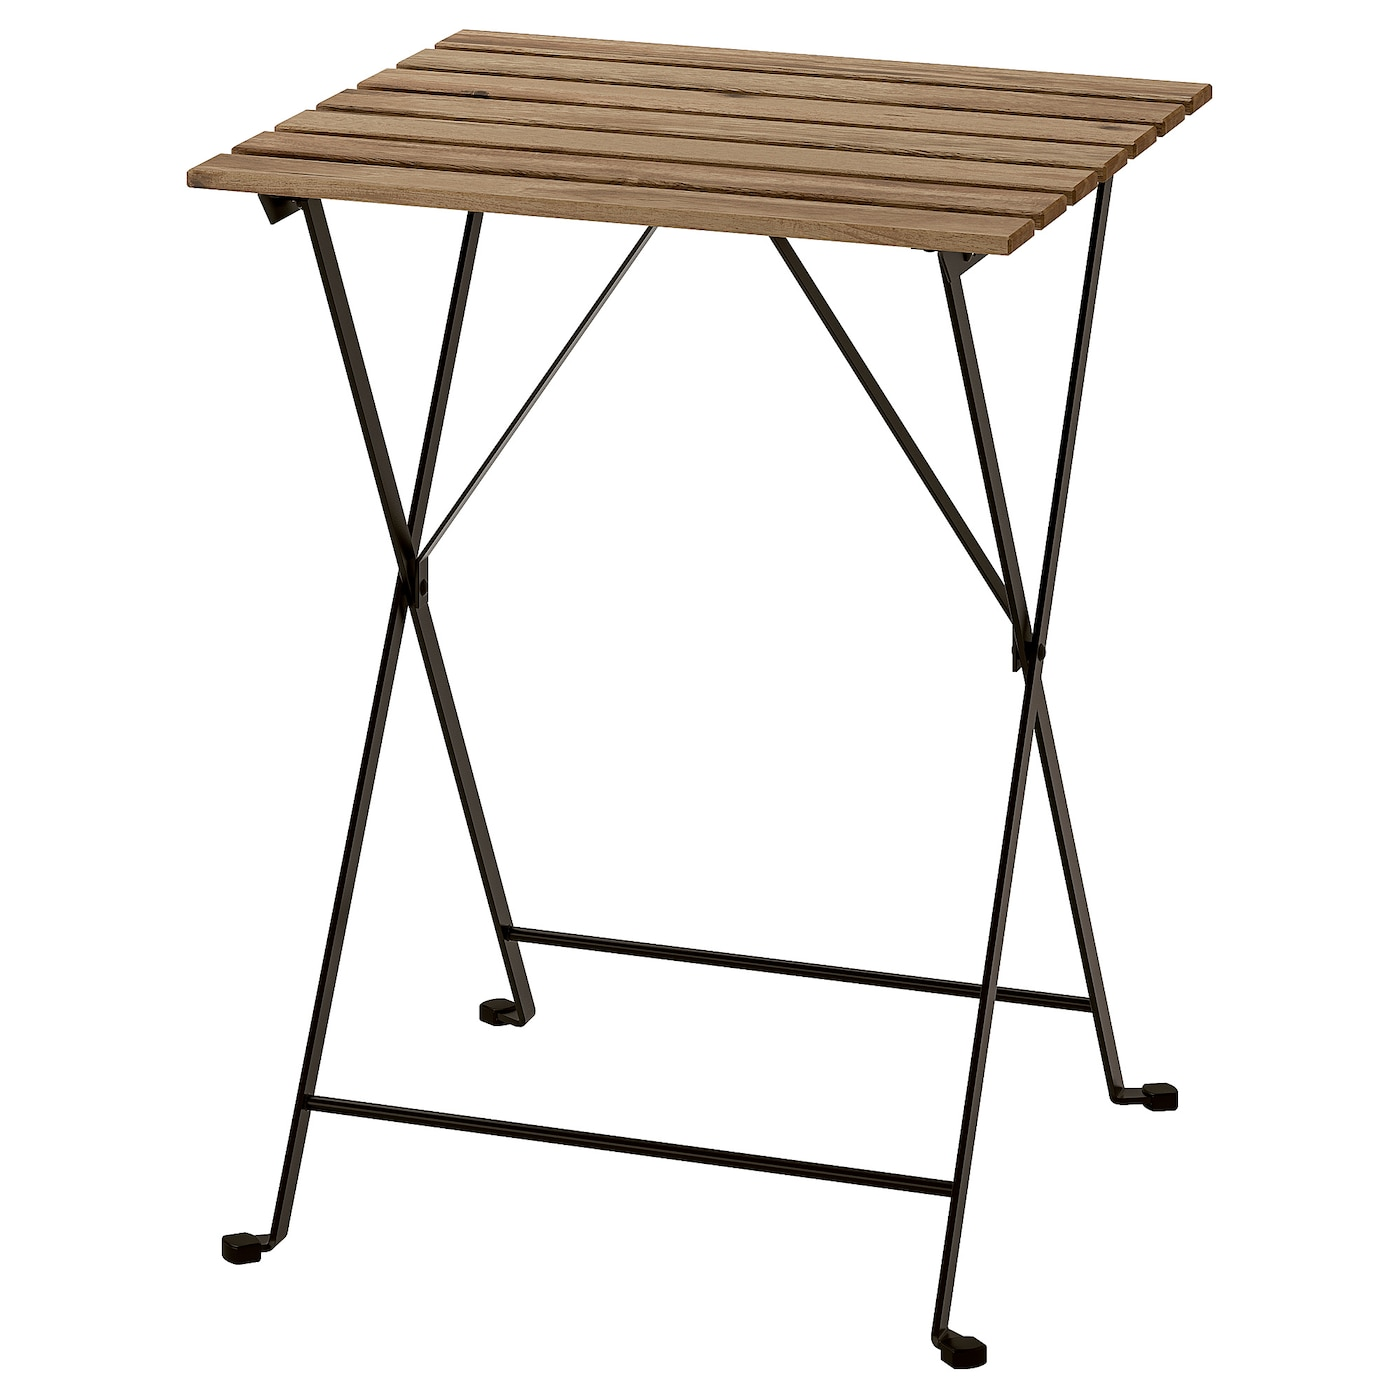 "TÄRNÖ Table, outdoor - black/light brown stained 8 8/8x8 8/8 "" (88x88 cm)"